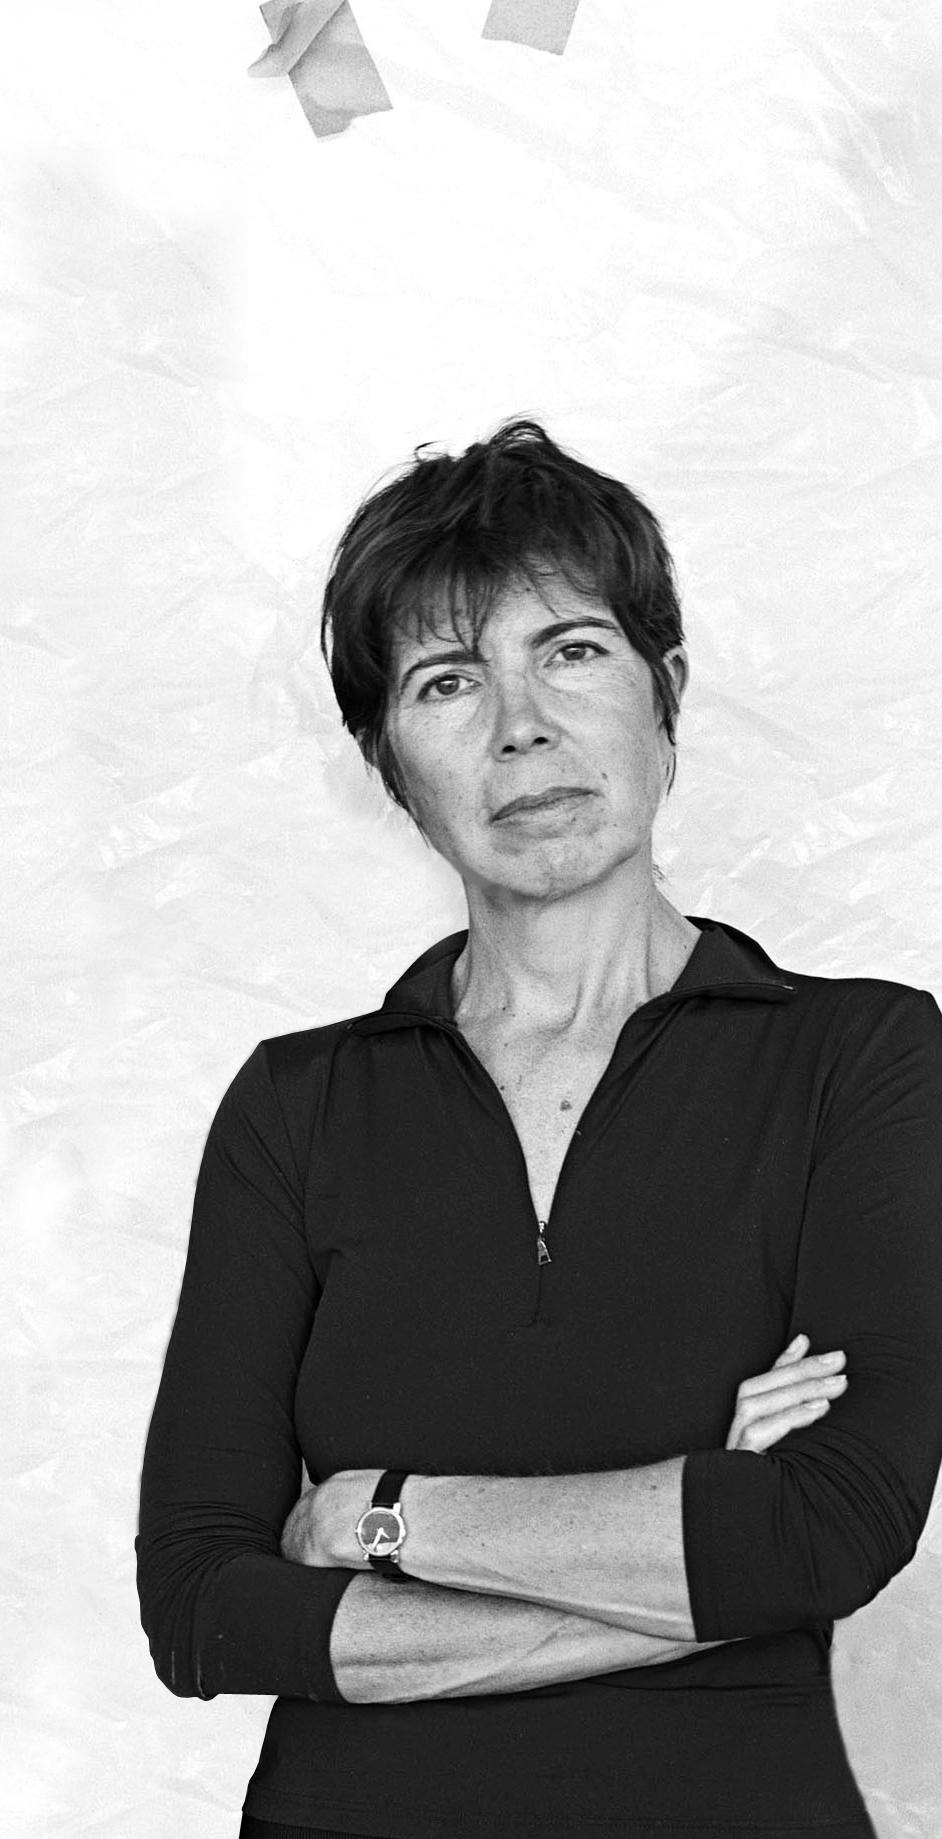 Black-and-white portrait of a short-haired woman, arms crossed, in a black zippered top